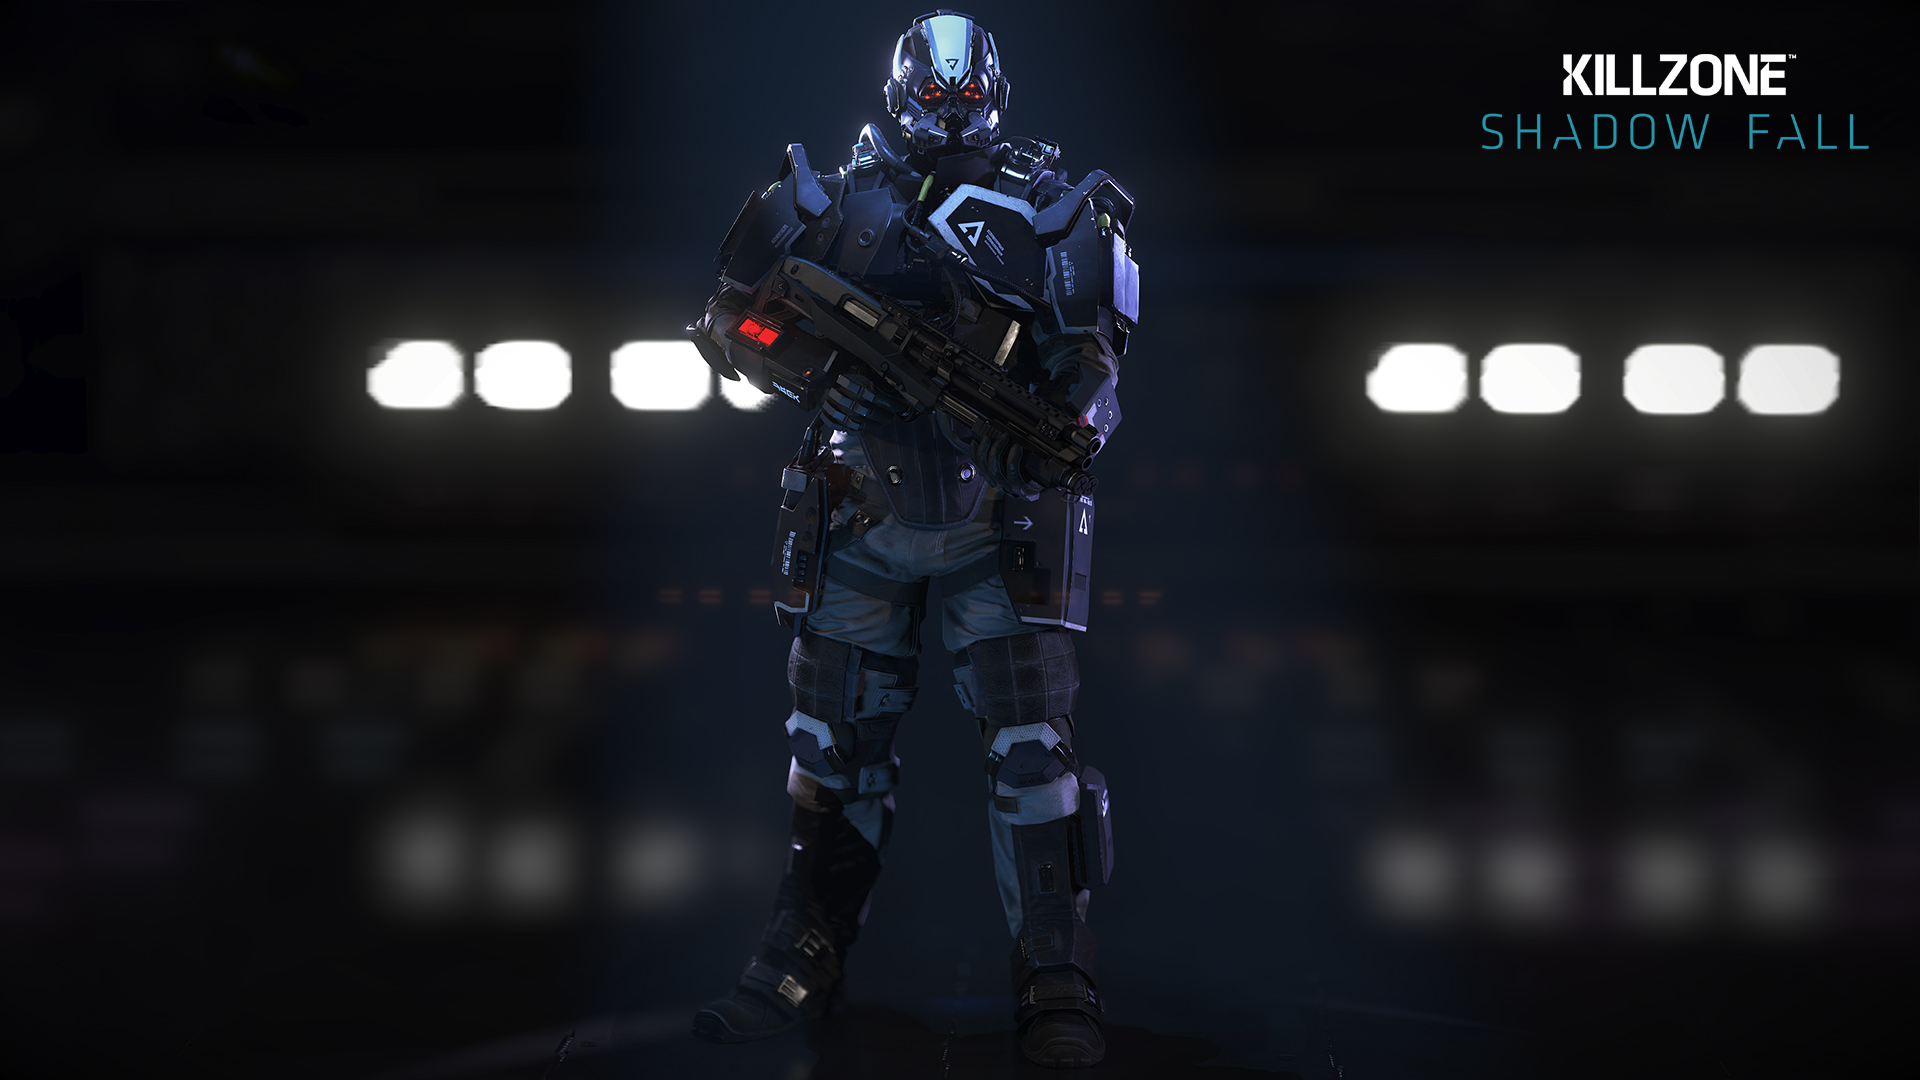 Killzone Shadow Fall Ps4 Wallpaper Killzone Shadow Fall Actors And In Game Models Revealed